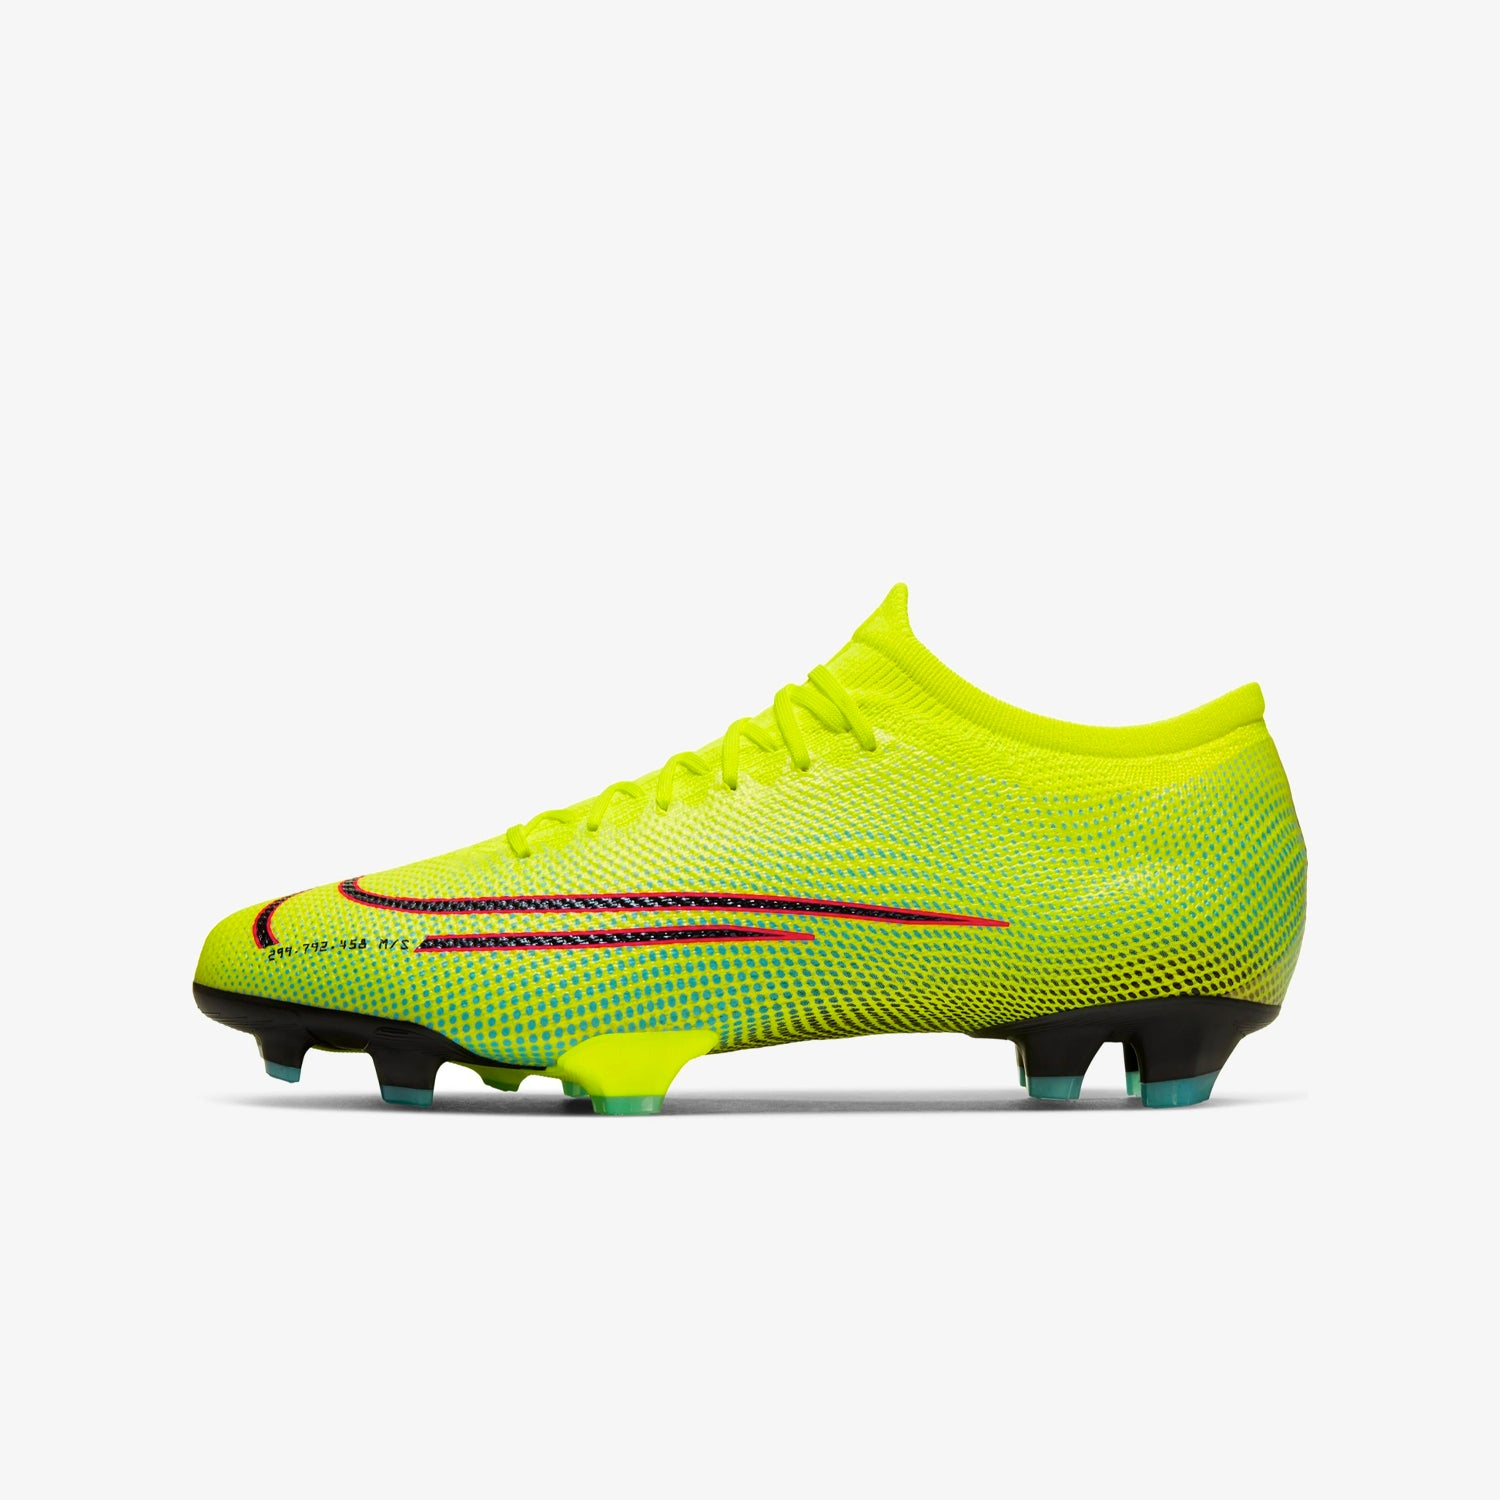 Men's Mercurial Vapor 13 Pro MDS FG Firm-Ground Soccer Cleat